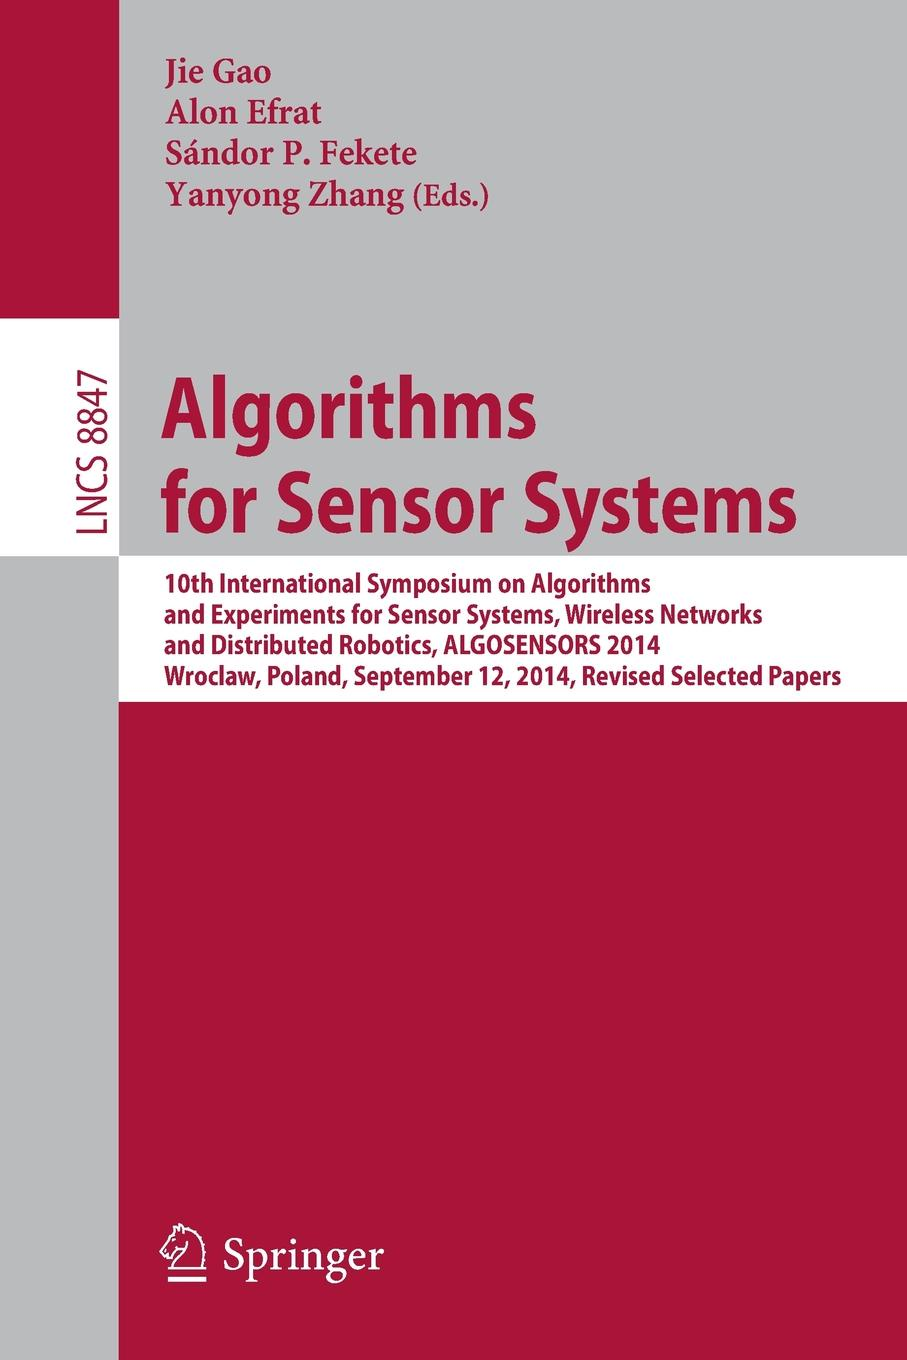 лучшая цена Algorithms for Sensor Systems. 10th International Symposium on Algorithms and Experiments for Sensor Systems, Wireless Networks and Distributed Robotics, ALGOSENSORS 2014, Wroclaw, Poland, September 12, 2014, Revised Selected Papers